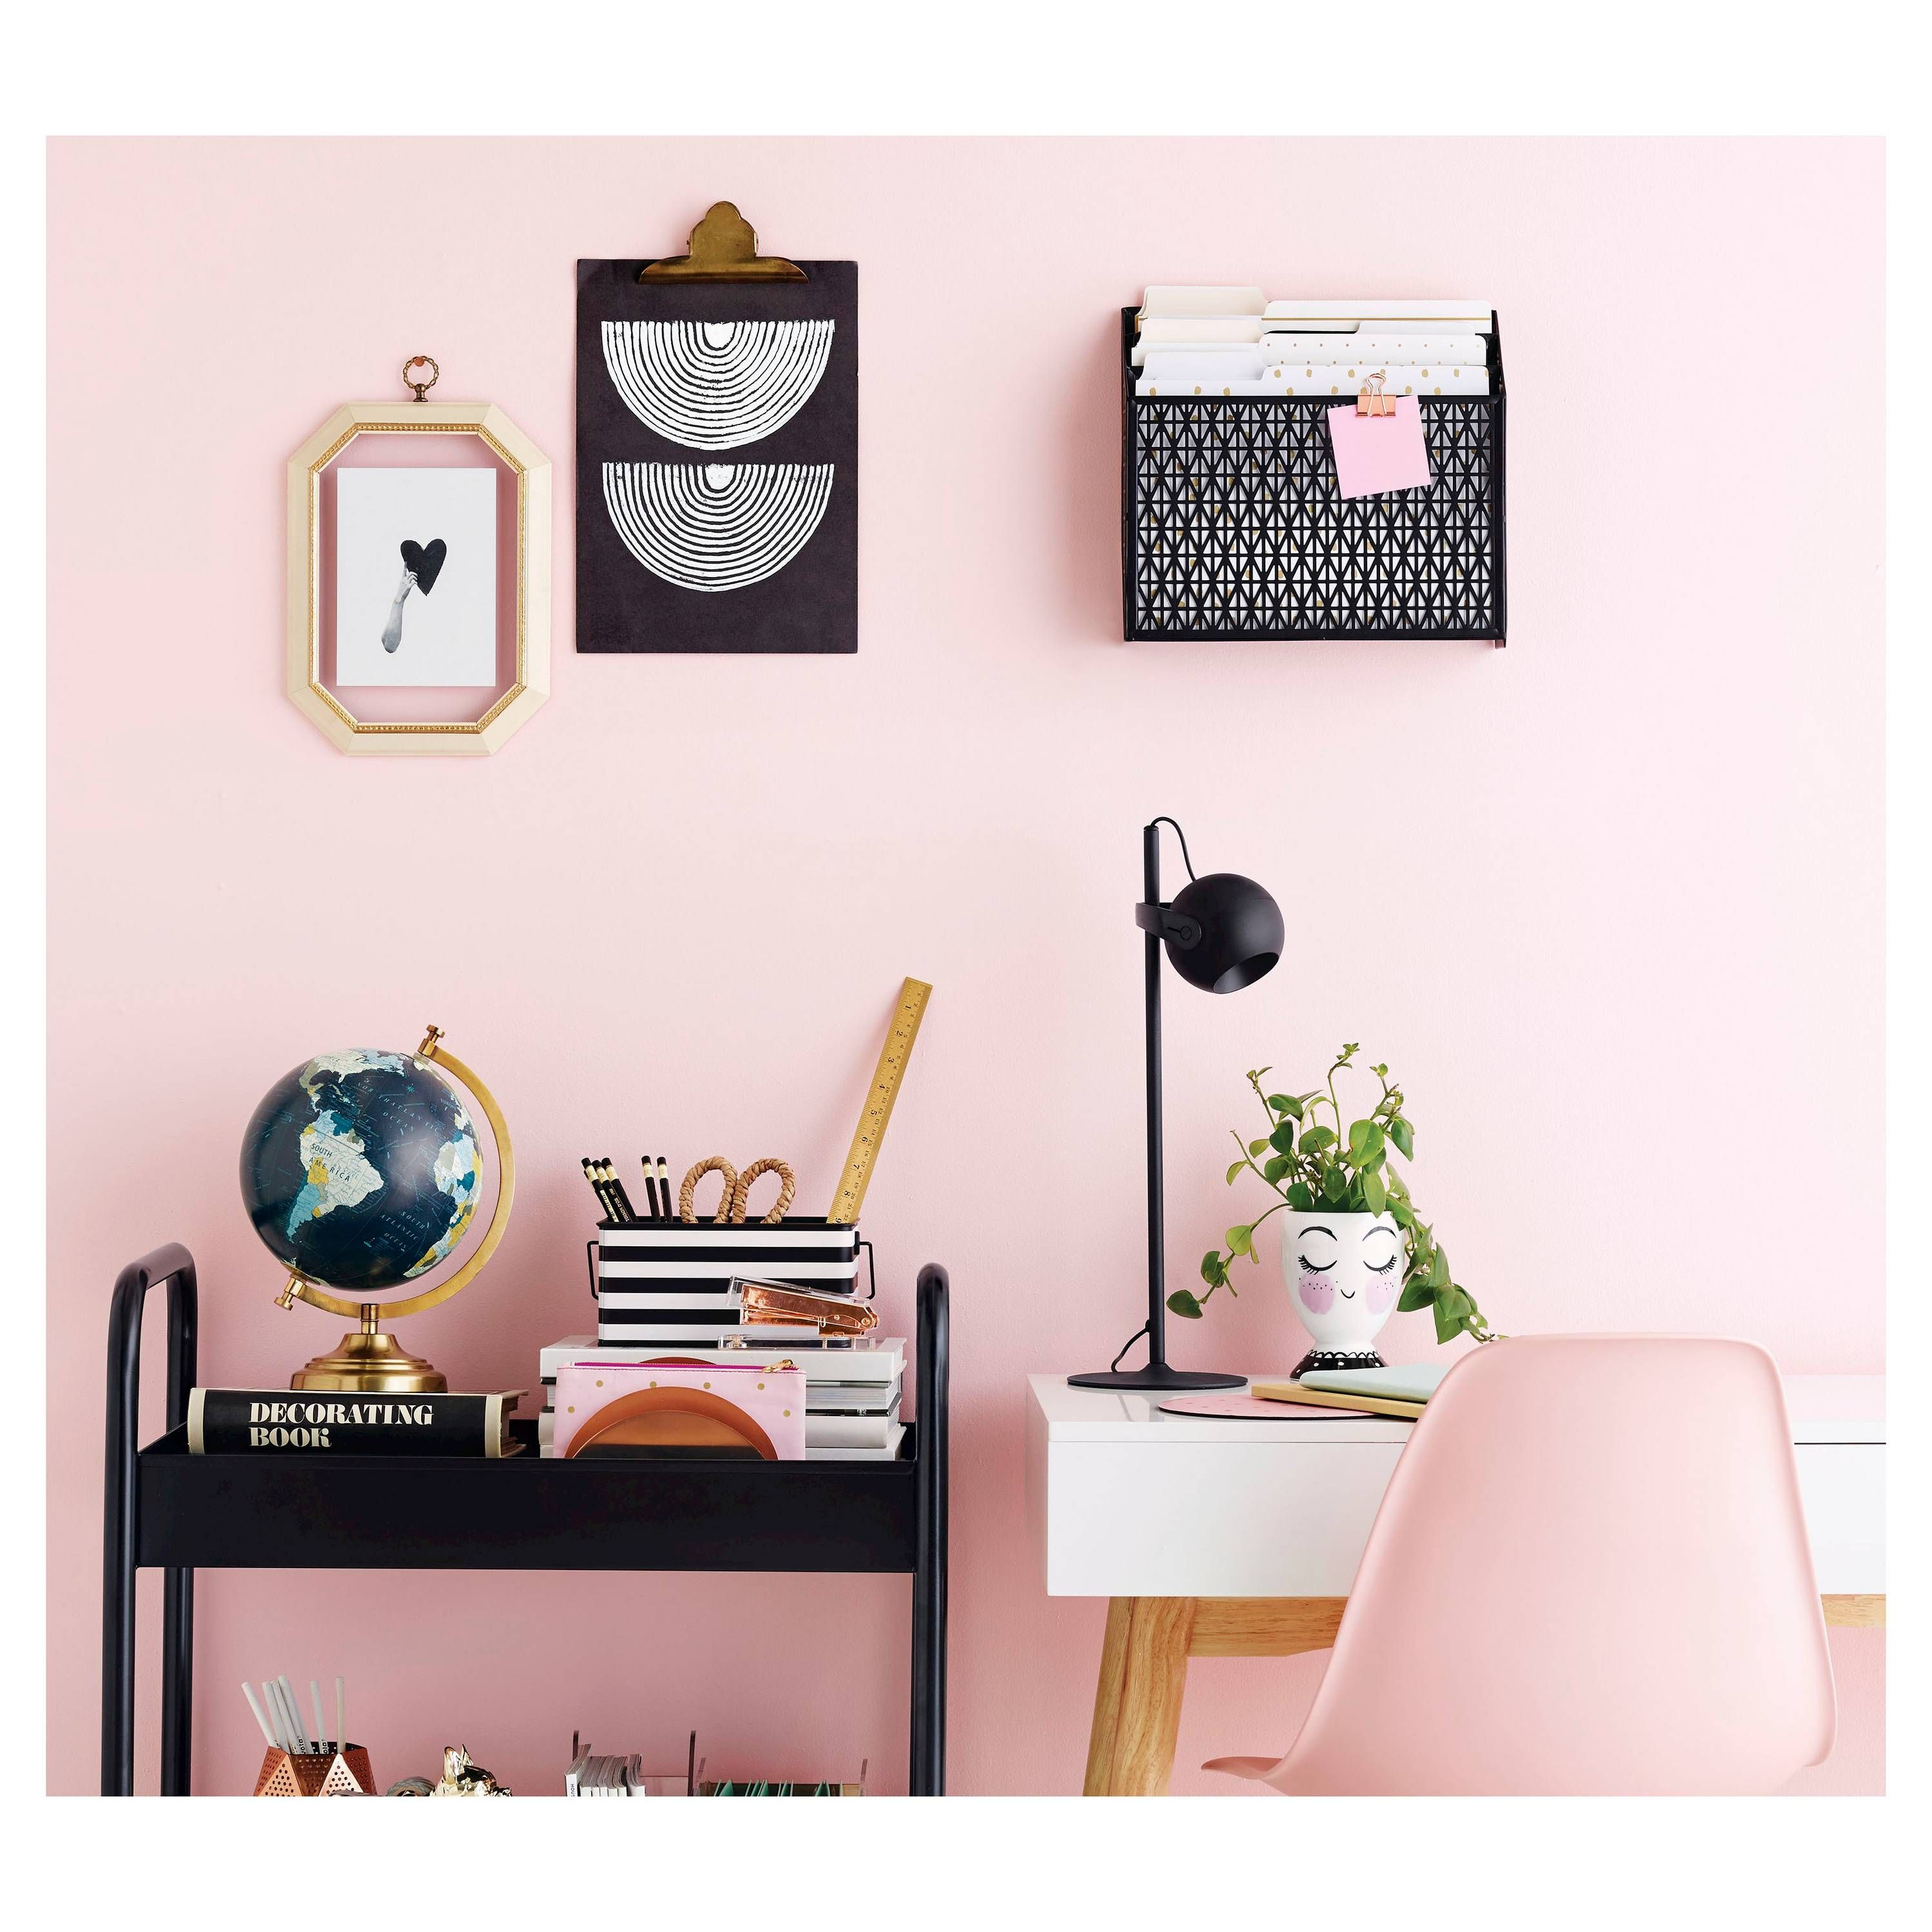 Bedroom Art Supplies: Office Supplies Sure To Make Your Colleagues Jealous